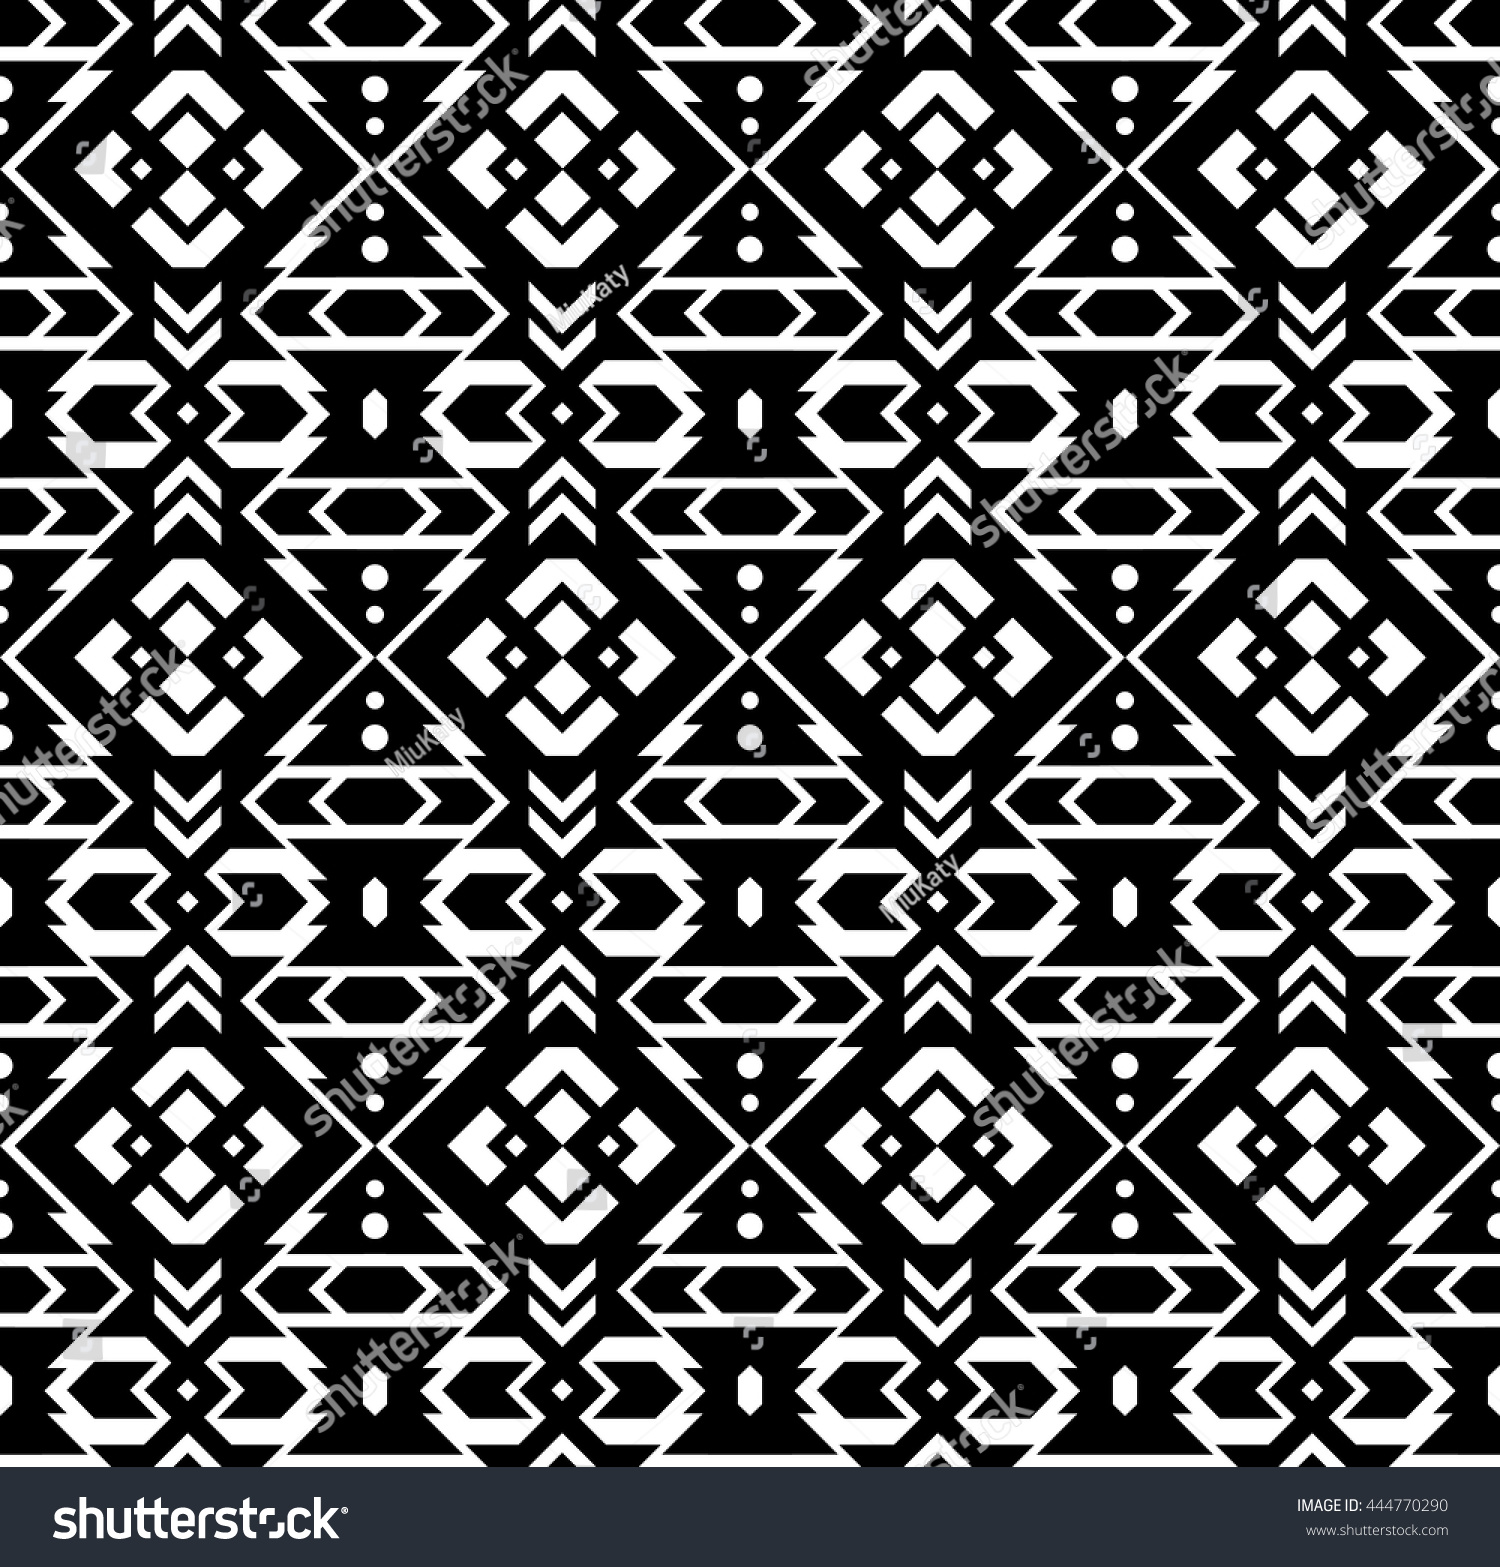 Background geometric mexican patterns seamless vector zigzag maya - Mexican Geometric Seamless Pattern Aztec Colorful Repeating Background Texture Design